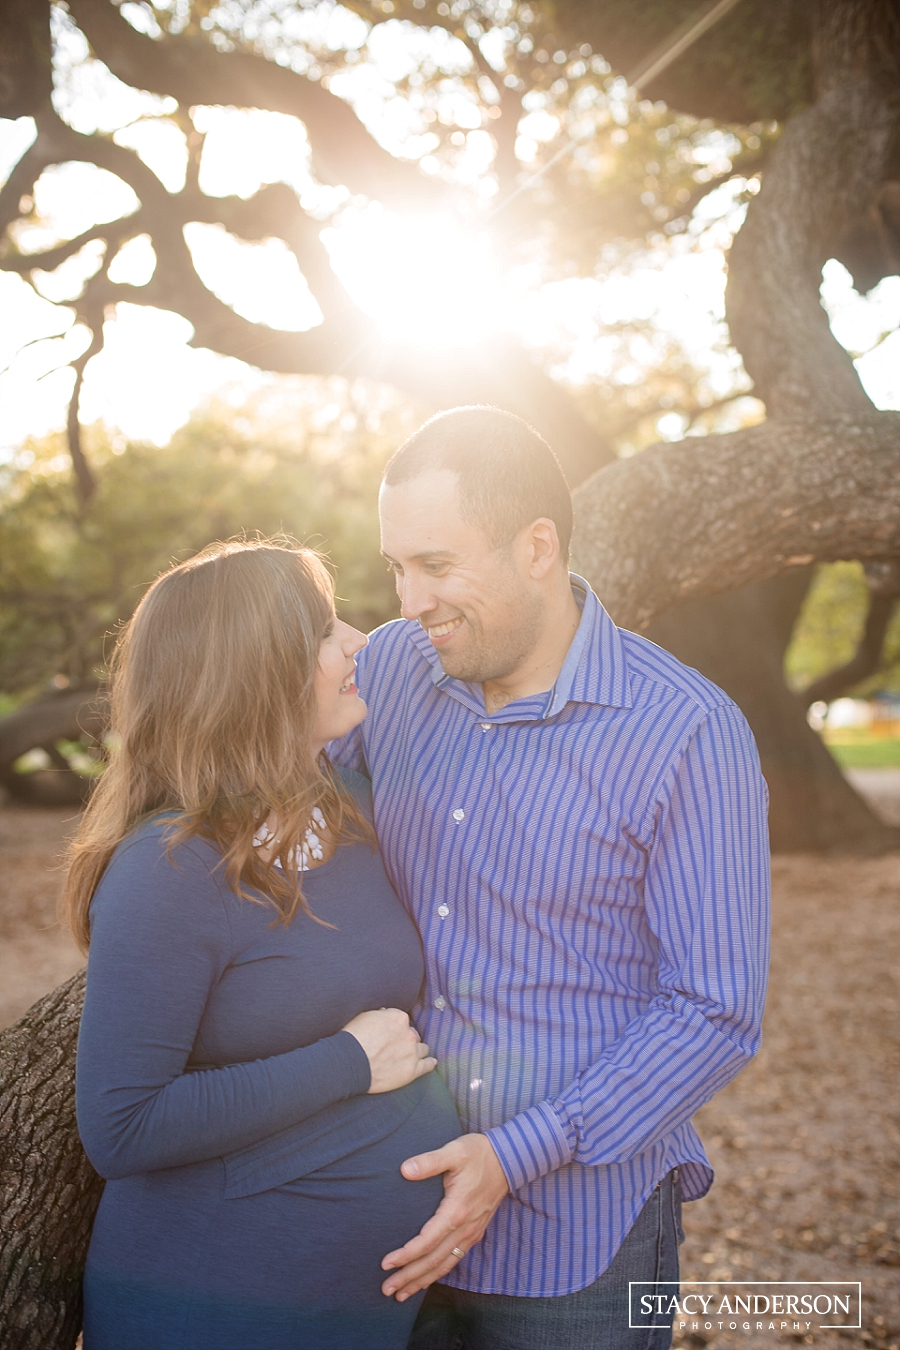 Stacy Anderson Photography Houston Maternity Photographer_1174